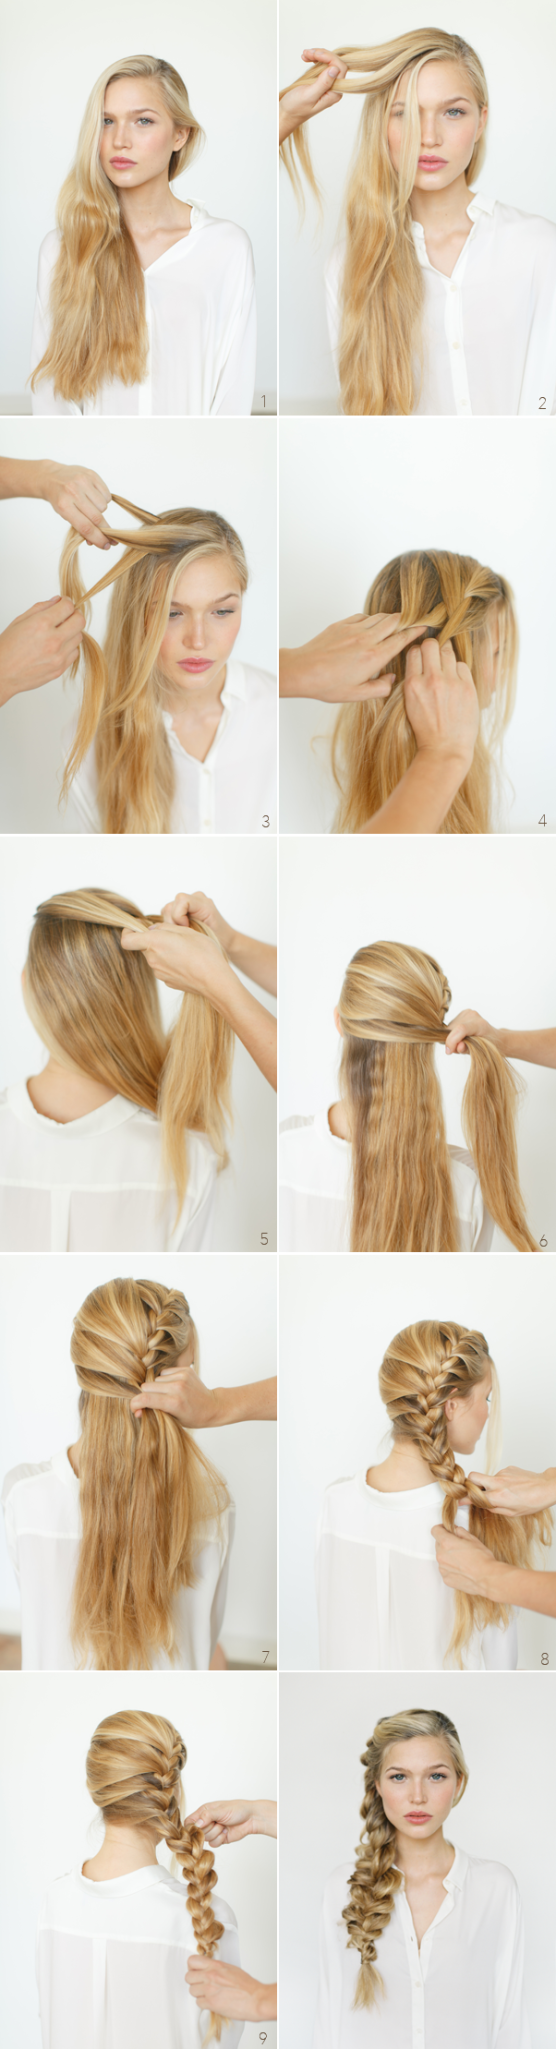 17-Romantic-Hairstyle-Ideas-and-Tutorials-2.png